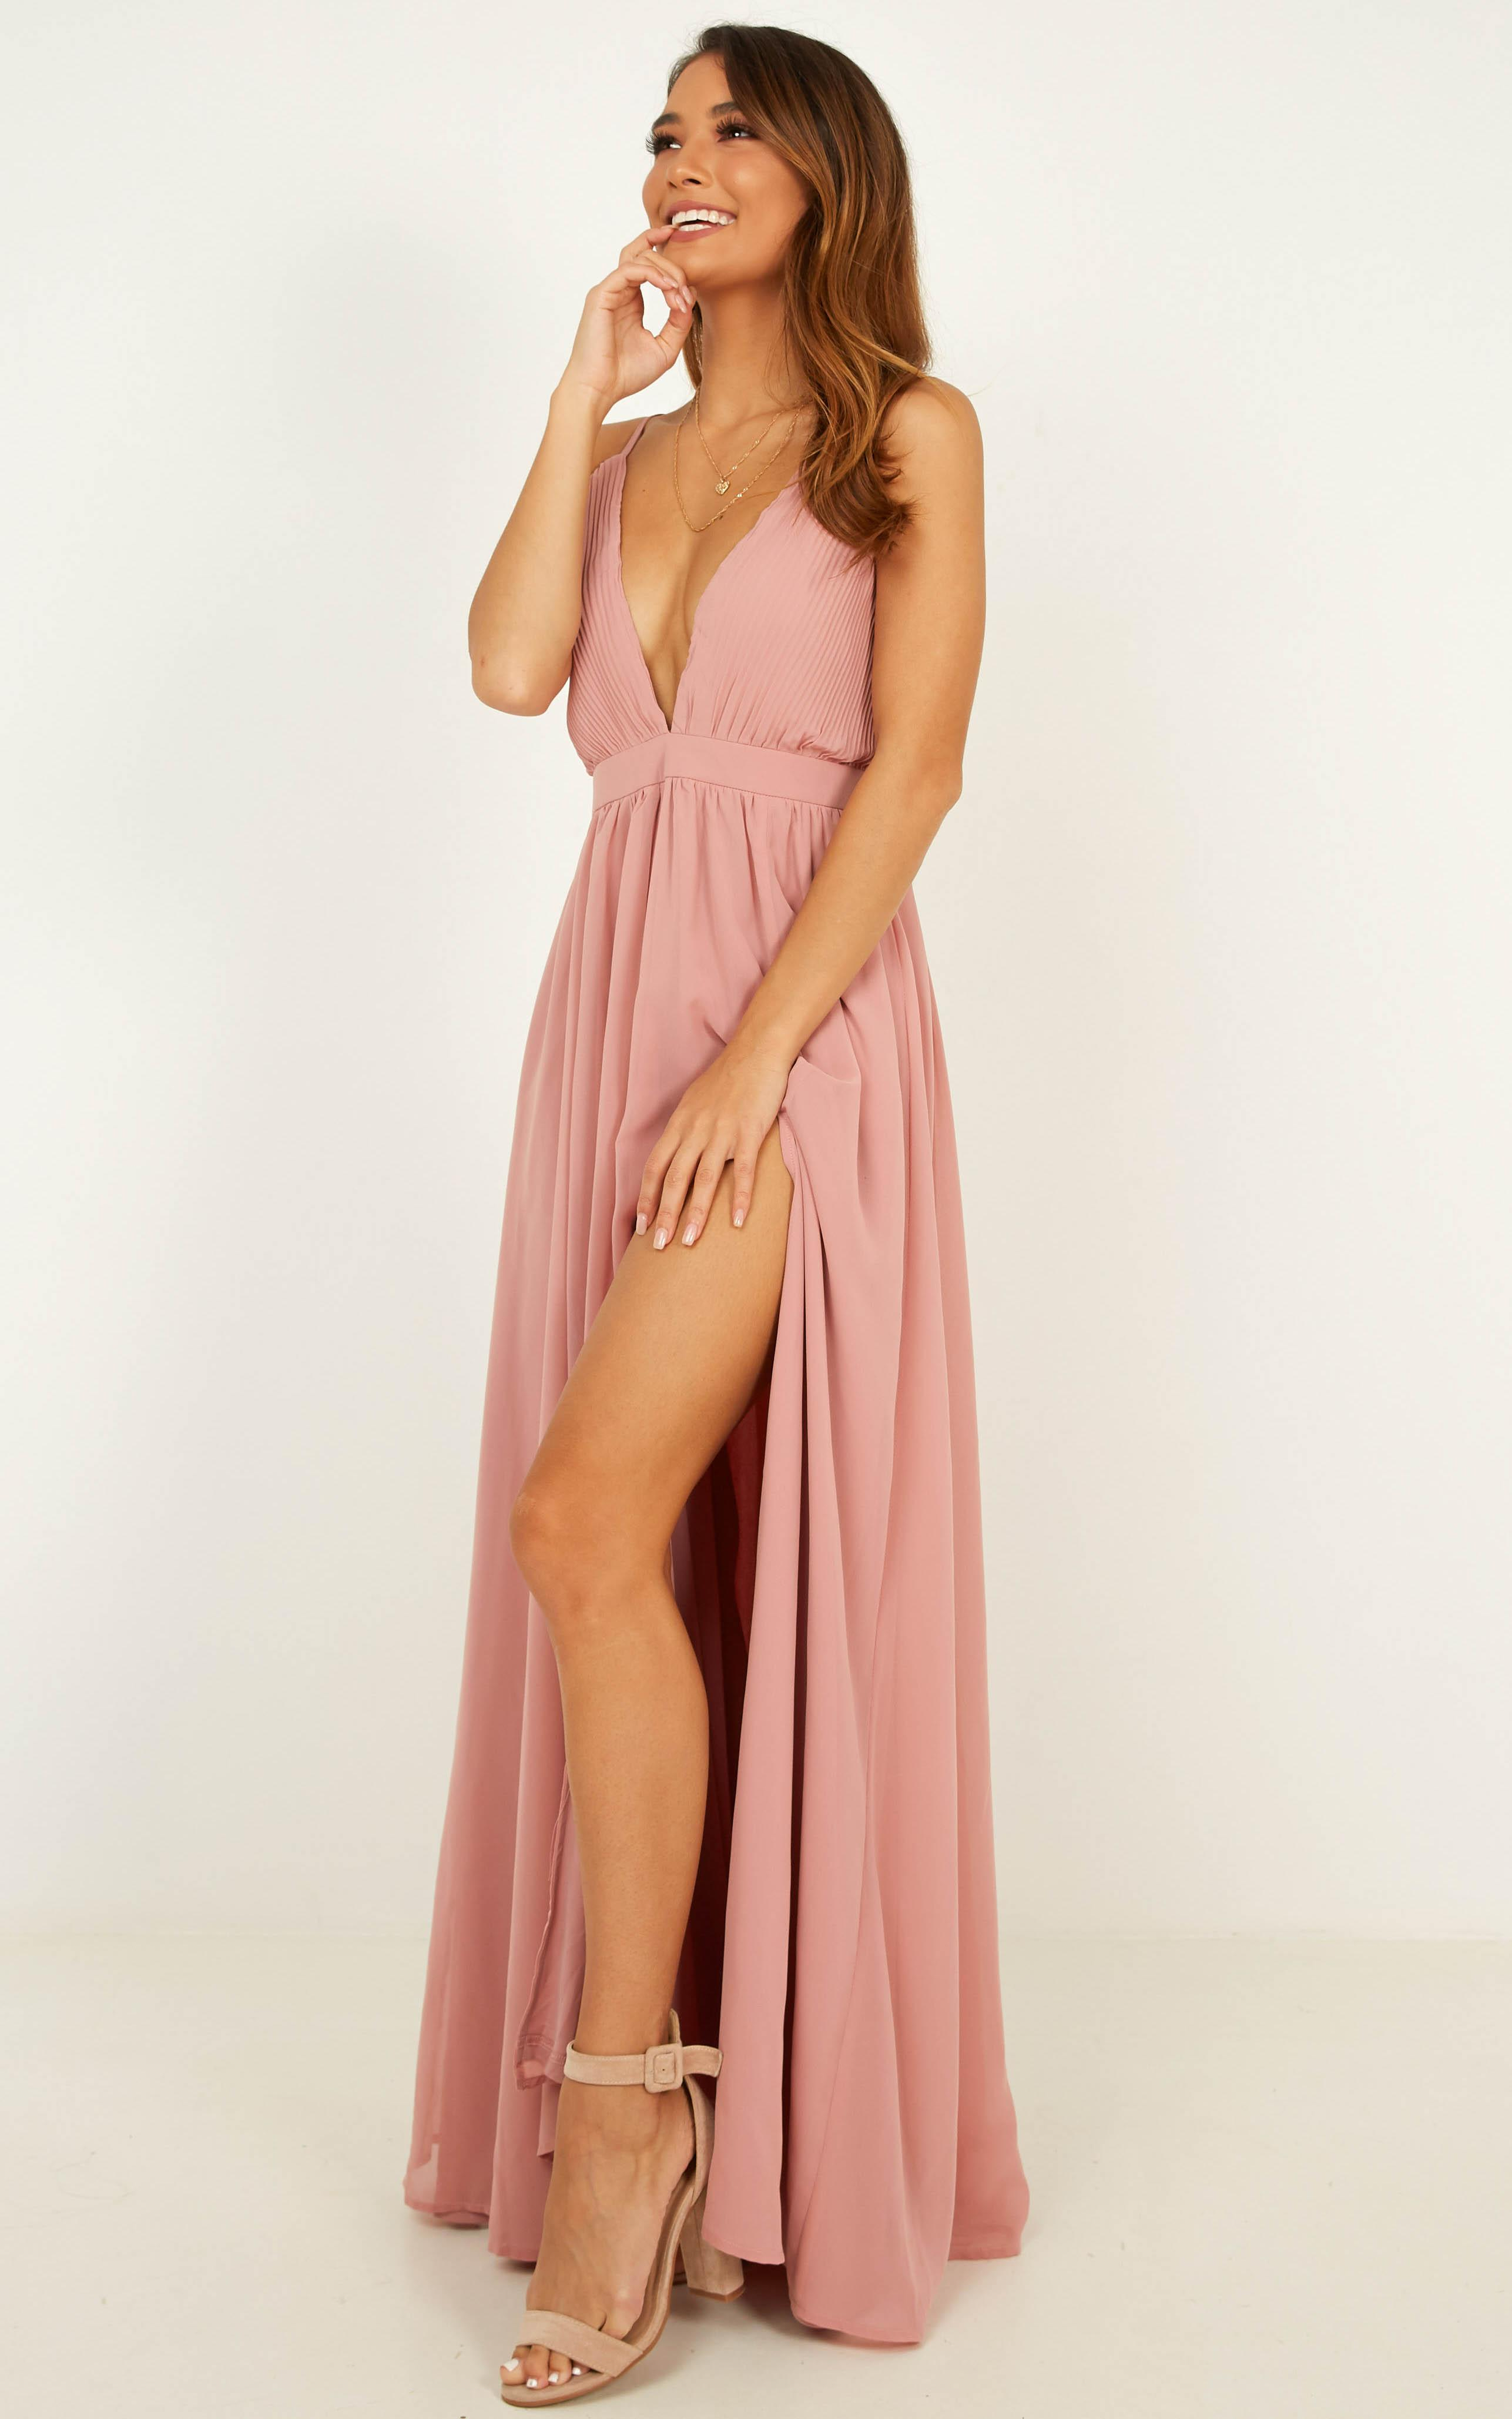 Shes A Delight Maxi Dress in dusty rose - 6 (XS), Pink, hi-res image number null